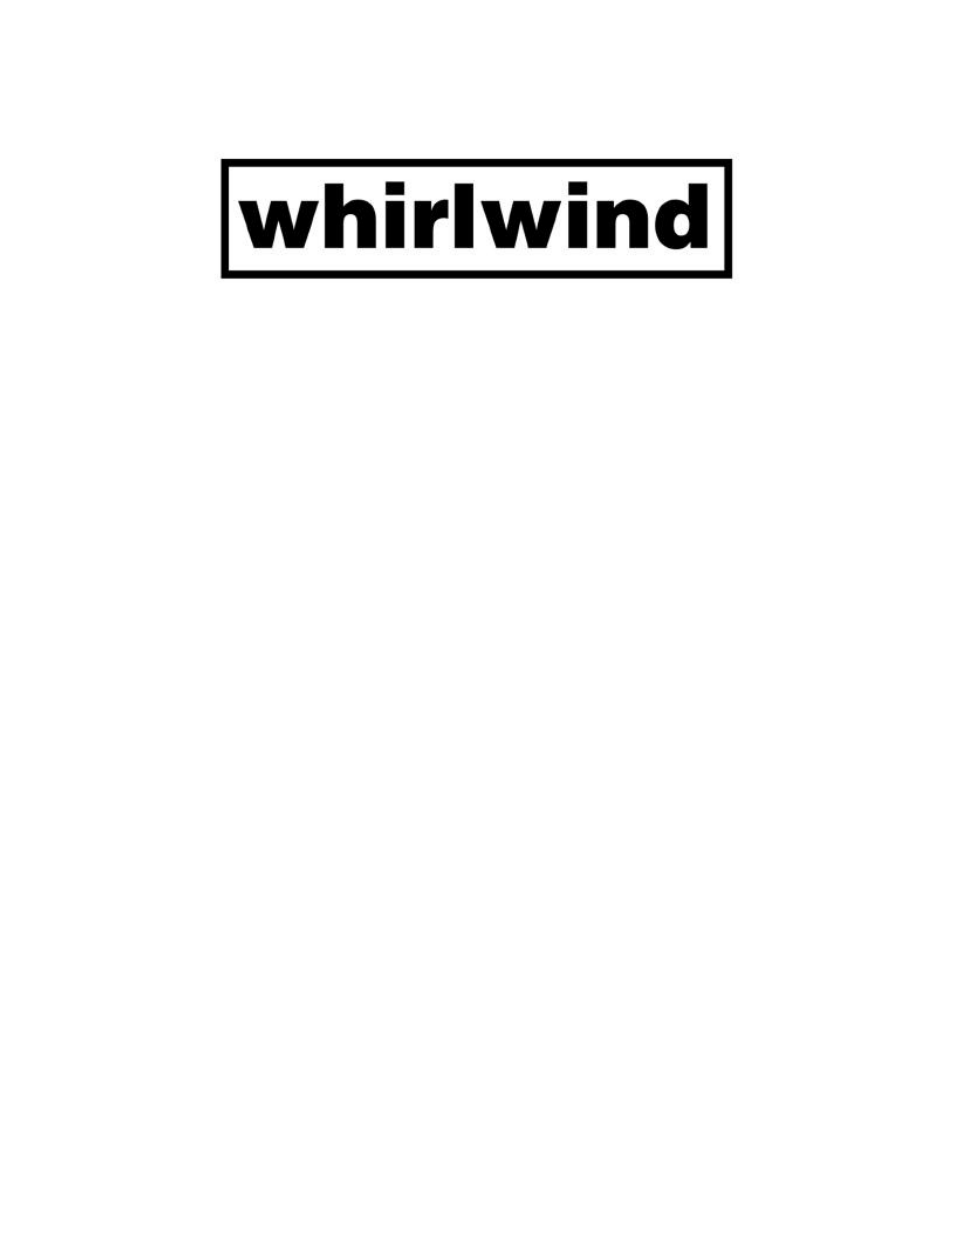 Whirlwind SP1X3LUNT User Manual | 2 pages